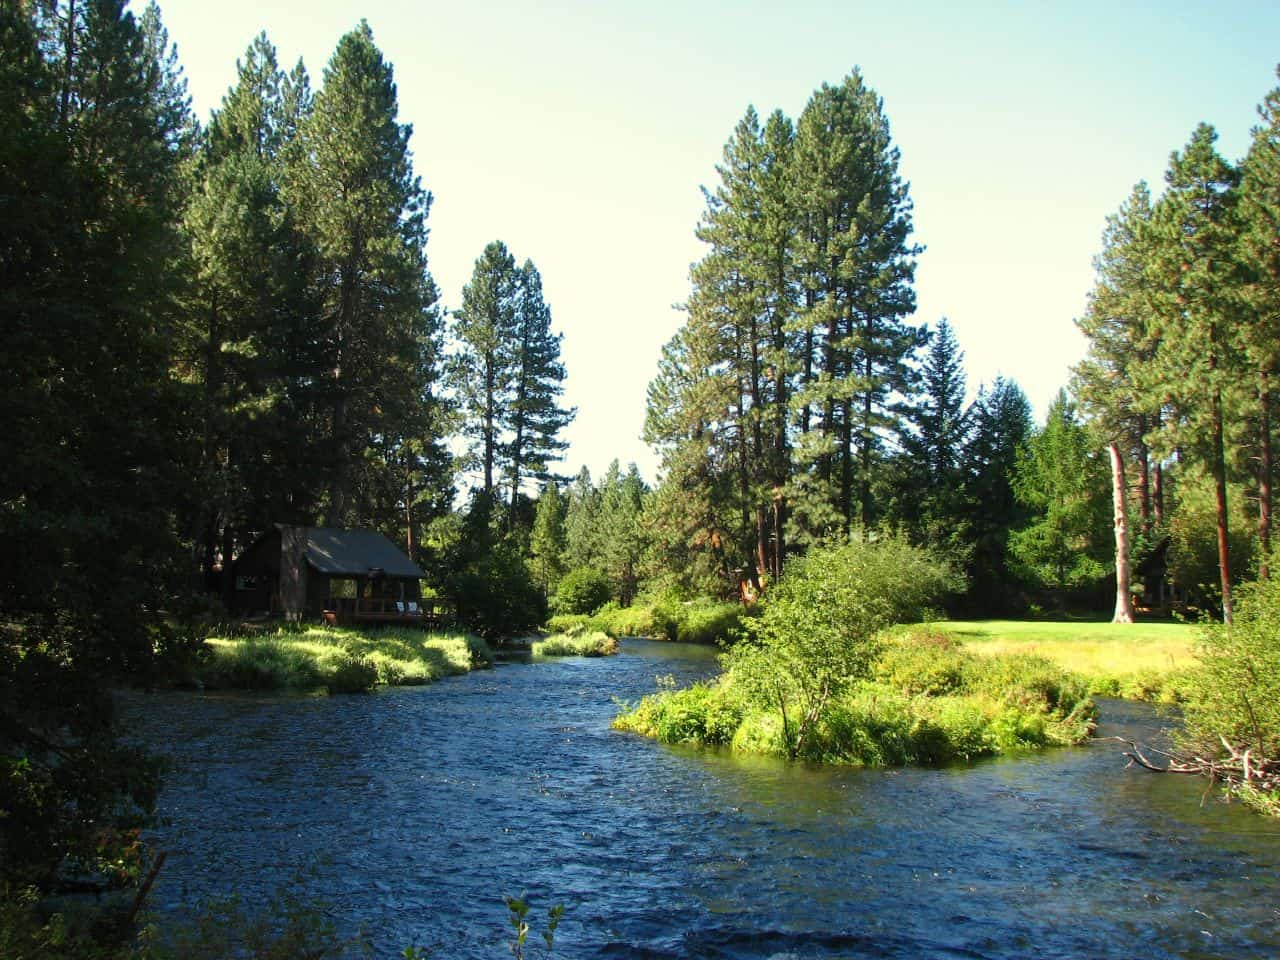 Metolius River at Camp Sherman